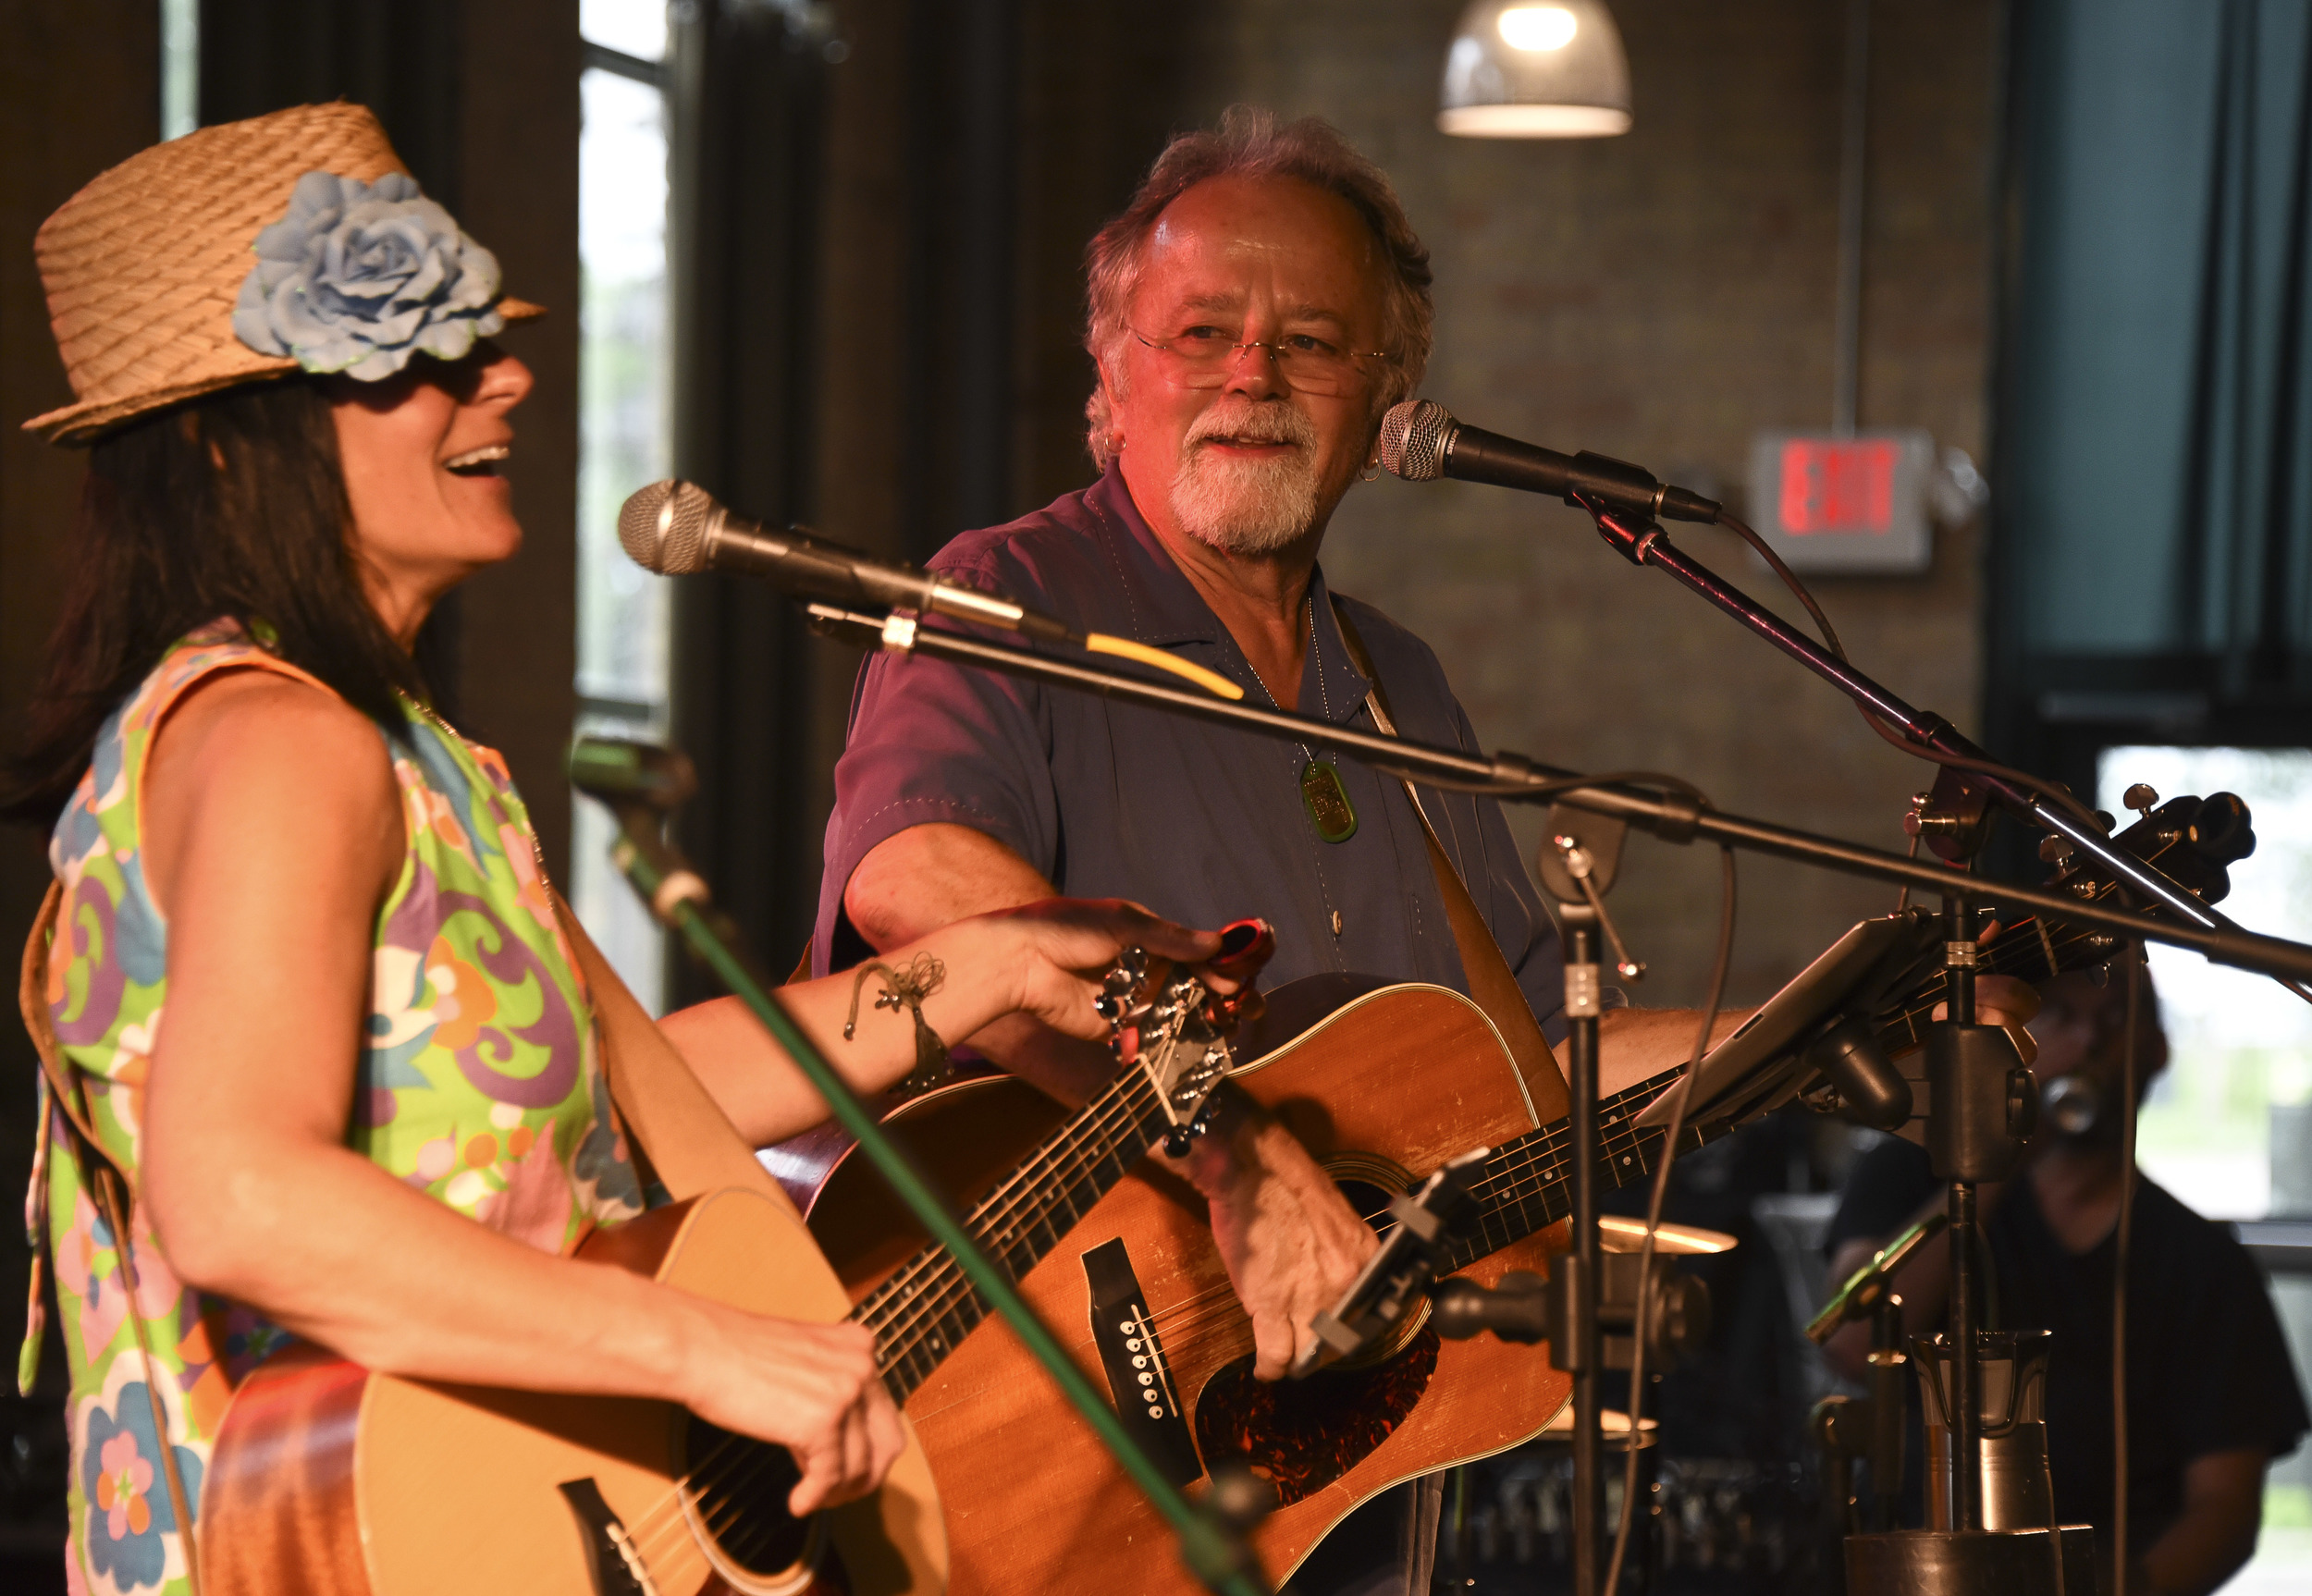 Amy Grillo and Gene LaFond / Clyde Iron Works / Duluth, Minnesota / September 6th, 2015 / Photo by Michael K. Anderson.